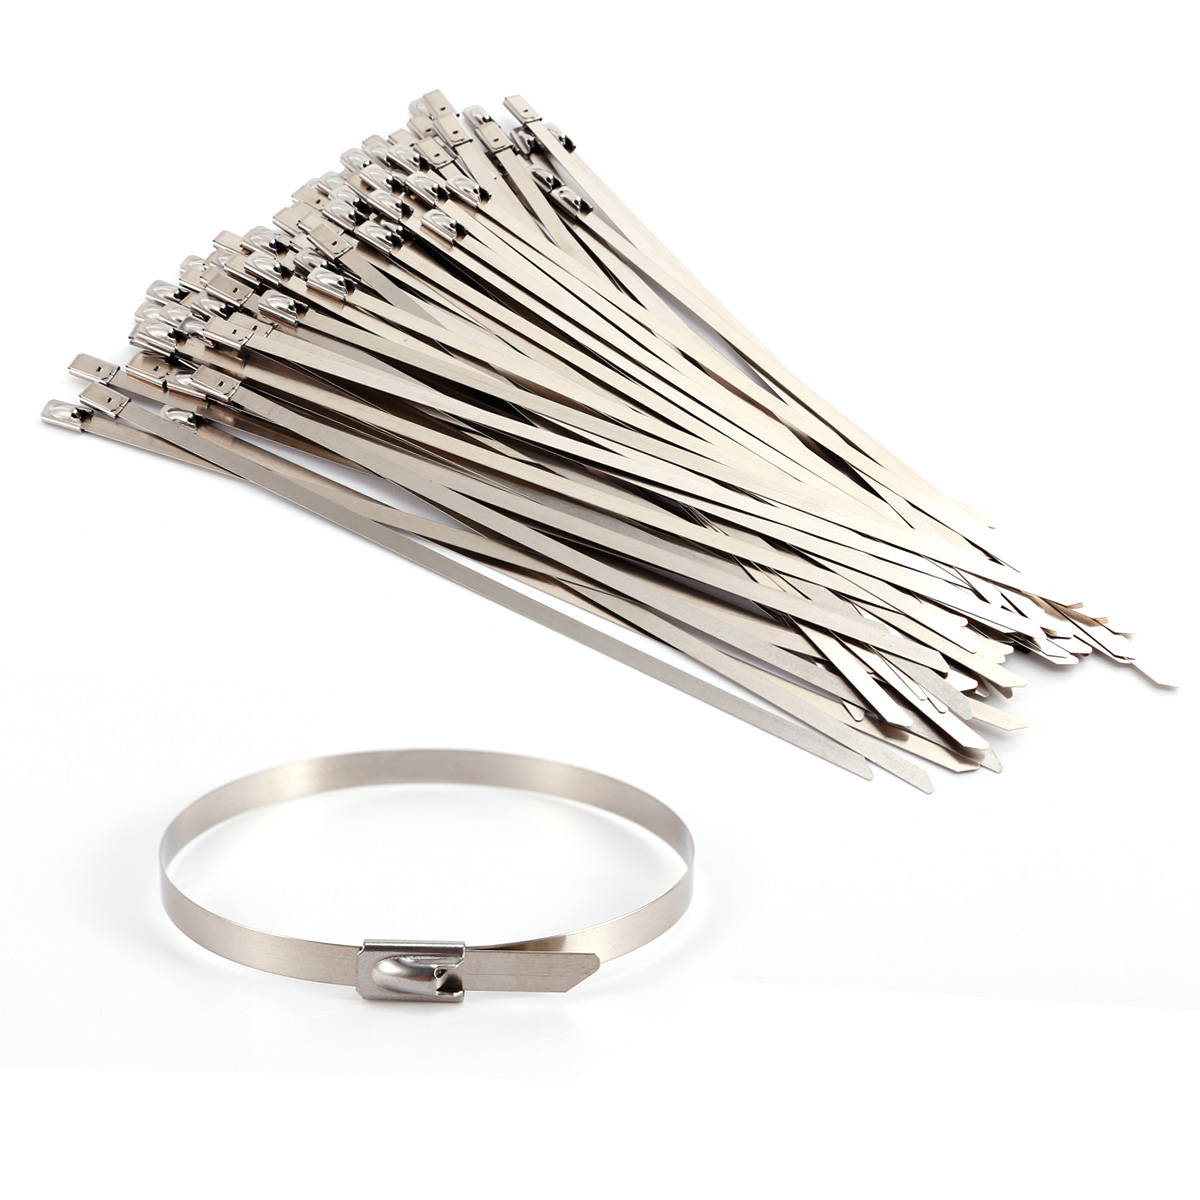 Stainless Steel Wire Ties : Pcs cm stainless steel metal cable wire ties zip tie